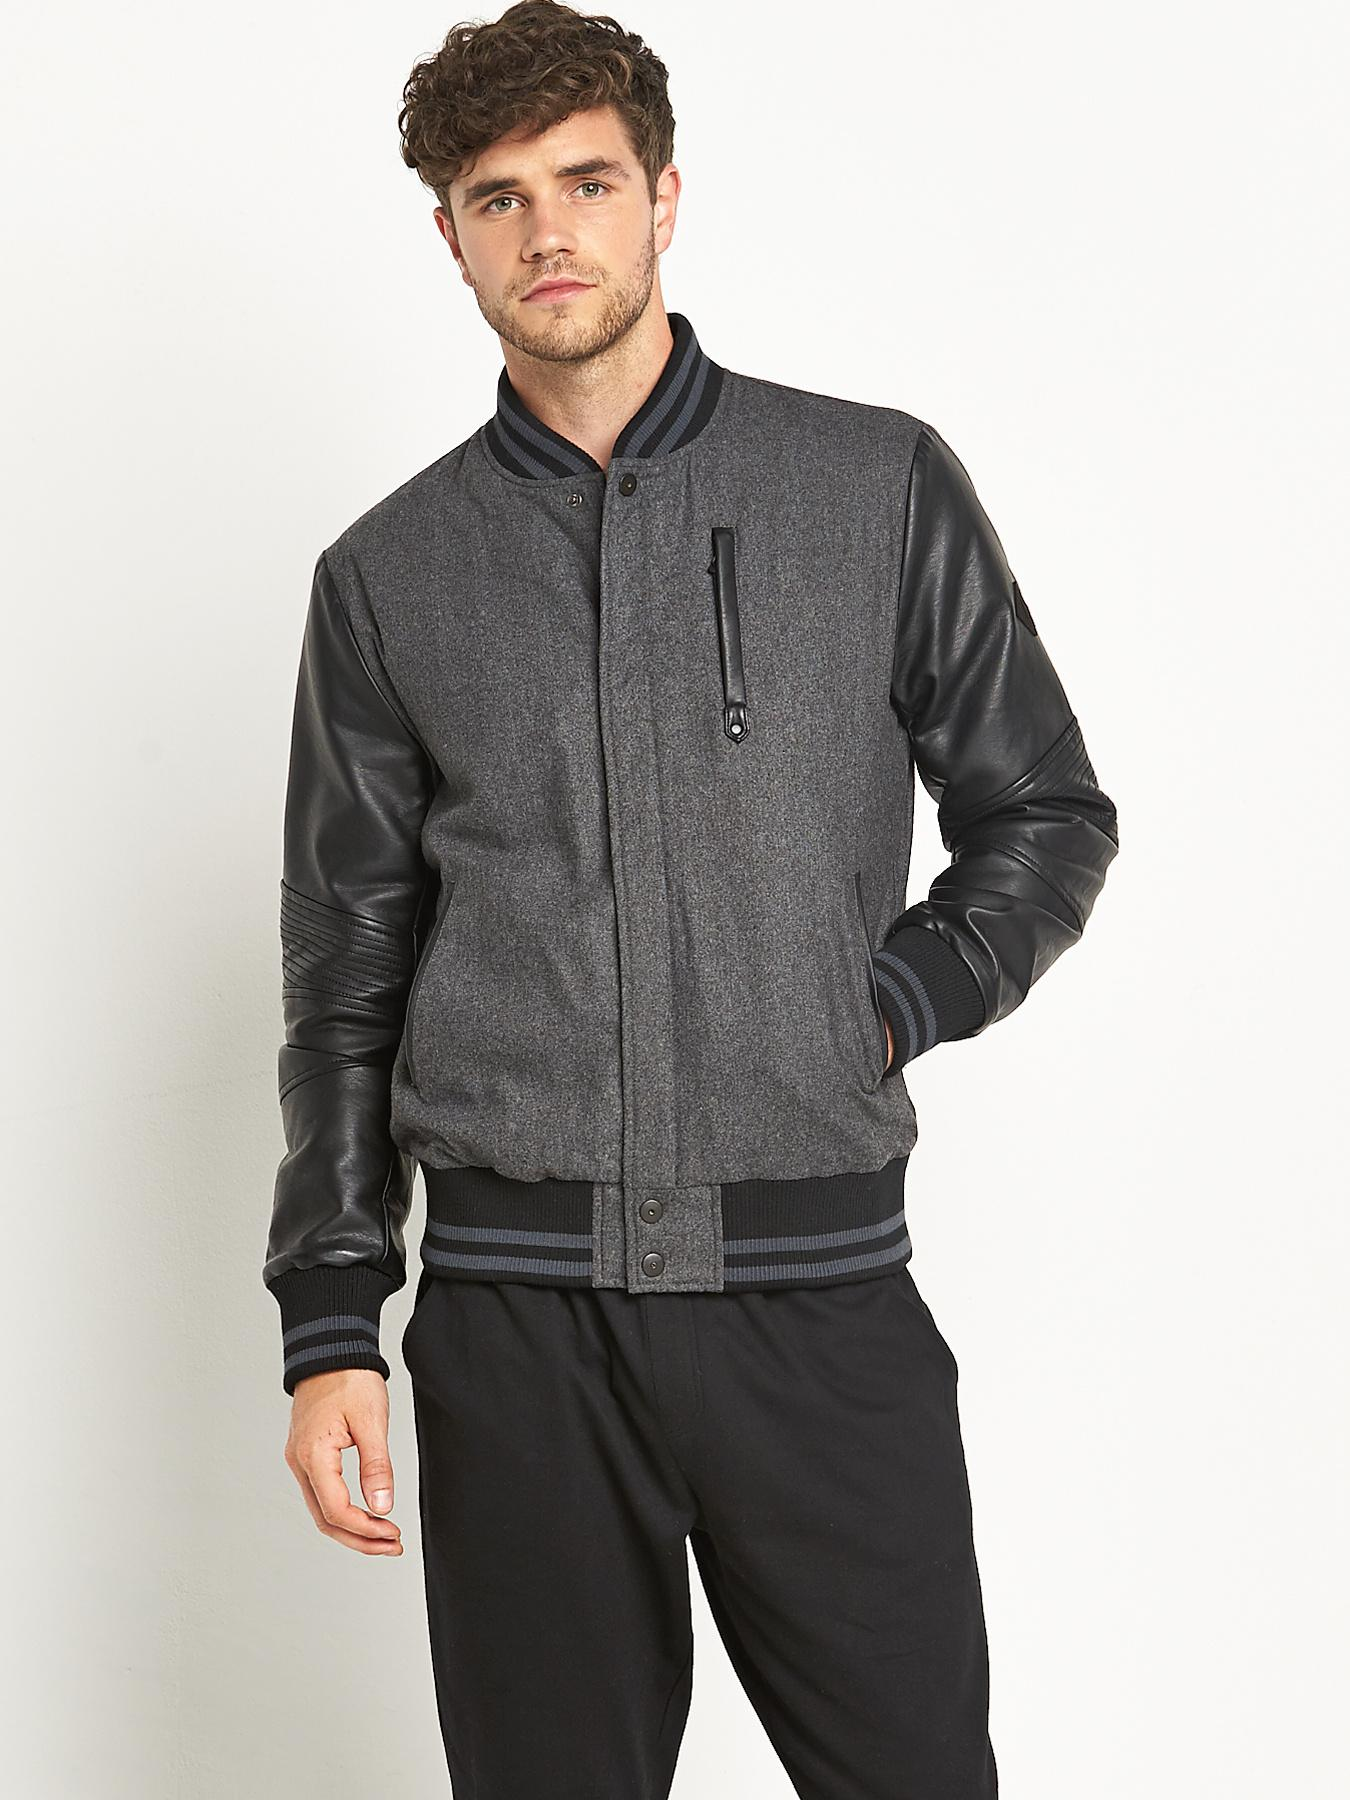 Mens PU Sleeve Baseball Jacket, Charcoal